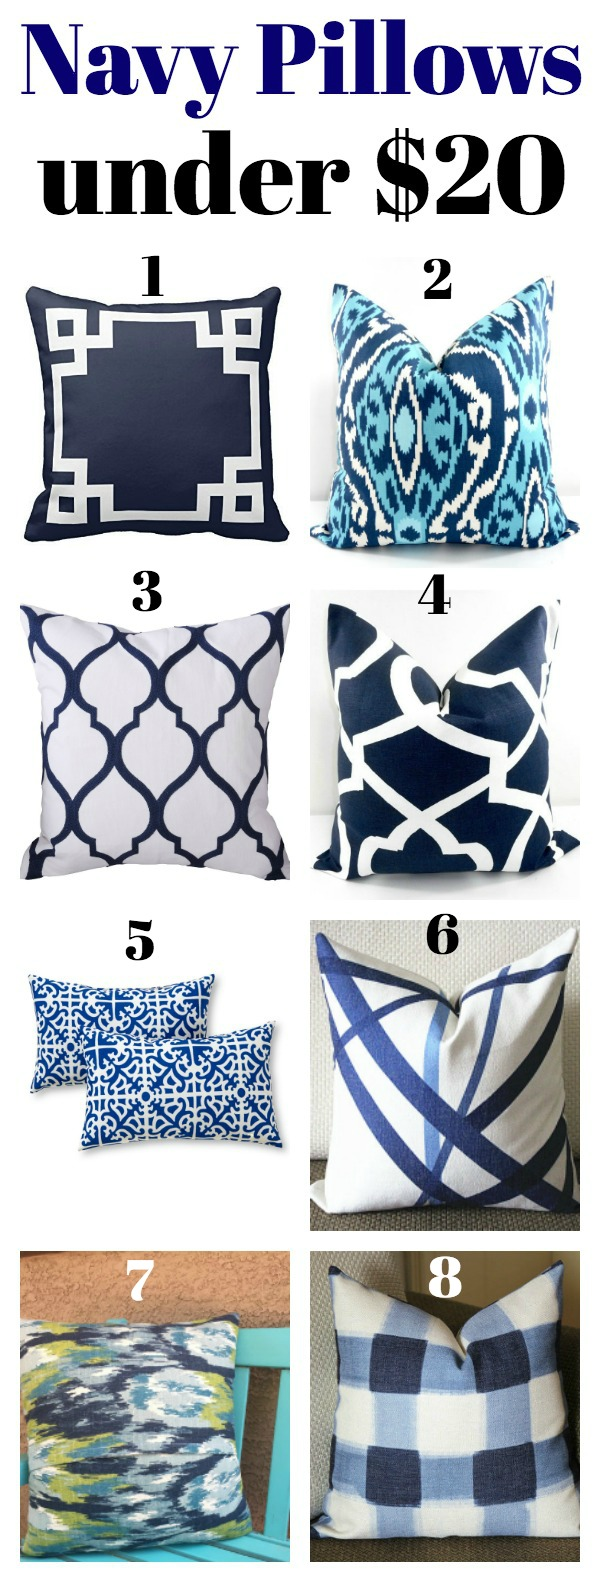 Navy Pillows Under $20 - Affordable, but stylish pillows!